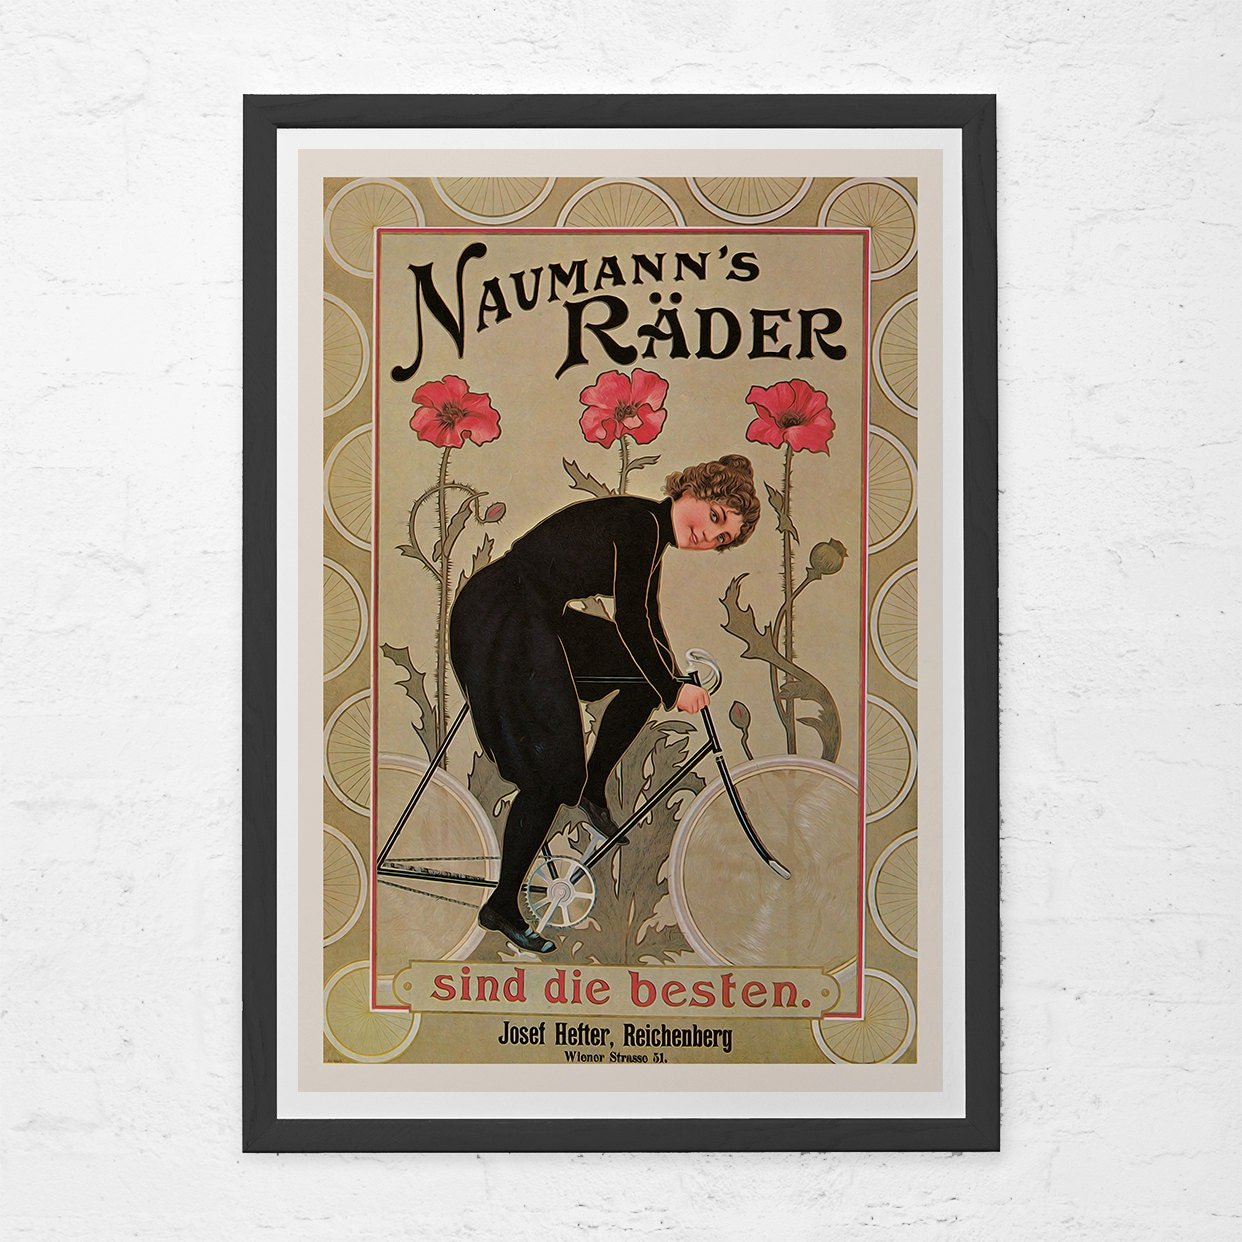 ANTIQUE BICYCLE POSTER Old German Bicycle Poster Art